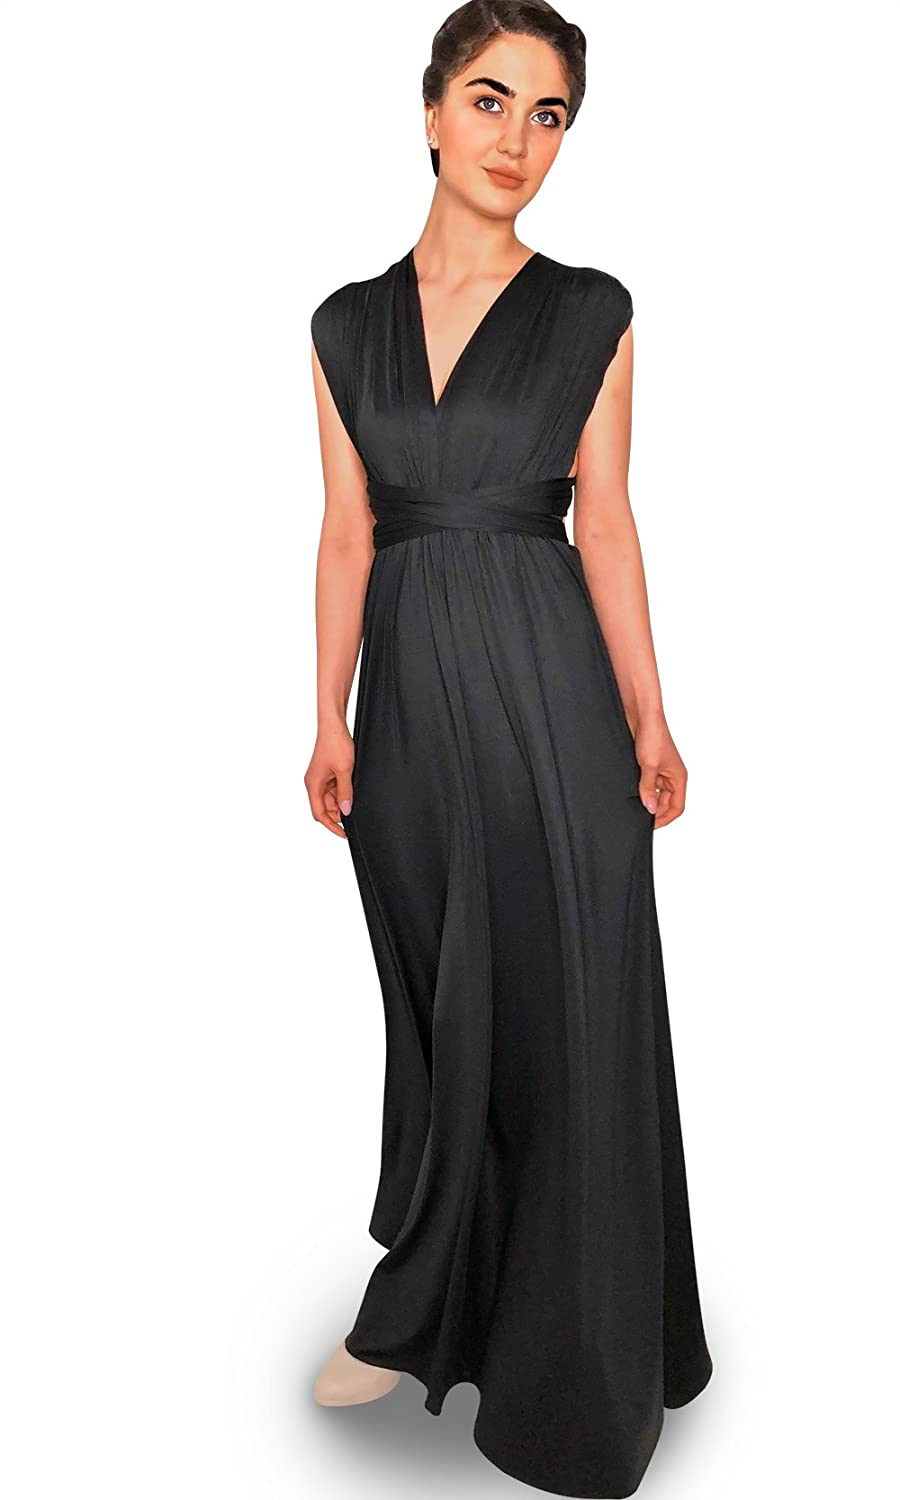 70a118e9a419 4Now Fashions Long Black Infinity Bridesmaid Dress Convertible Multiway:  Amazon.ca: Clothing & Accessories